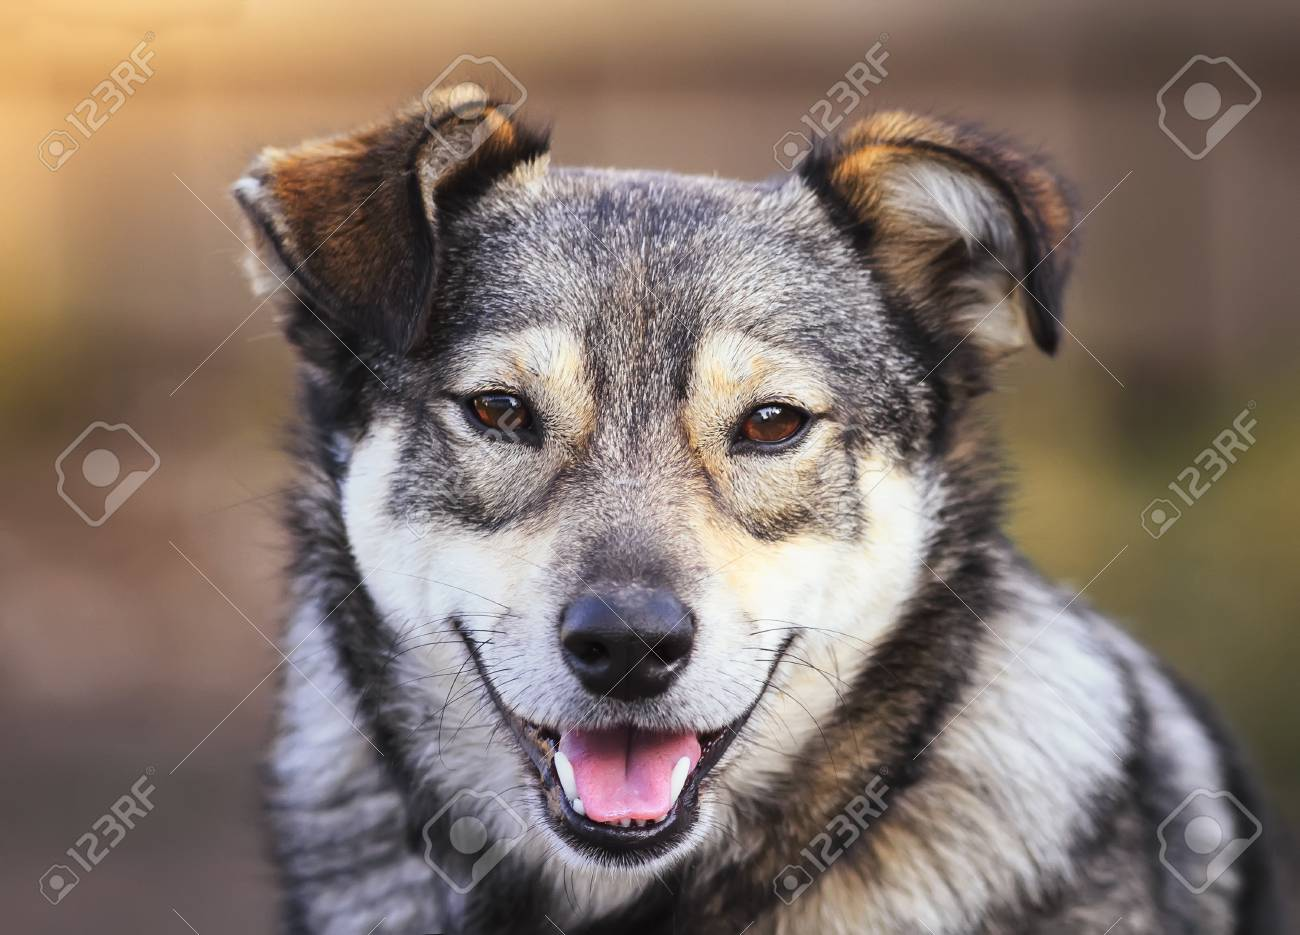 Portrait Of Cute Funny Dog Puppy Mutts Smiling Friendly Stock Photo Picture And Royalty Free Image Image 98377143